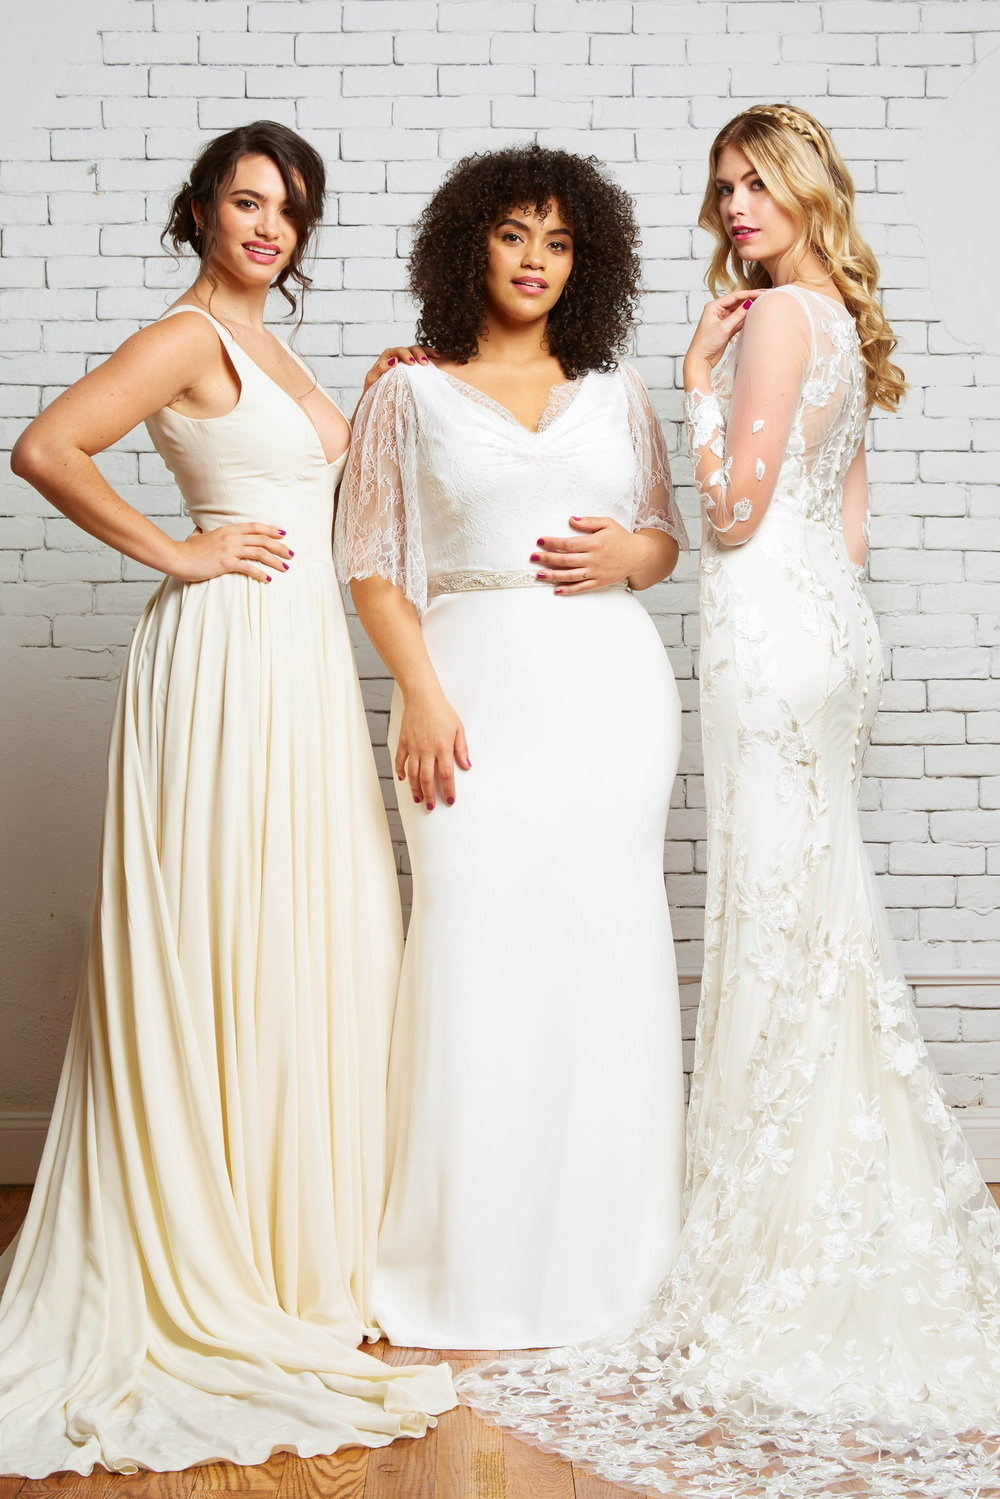 savannah-bridal-shop-ivory-and-beau-bridal-boutique-plus-size-trunk-show-plus-size-wedding-dresses-rebecca-schoneveld-trunk-show-1.jpeg